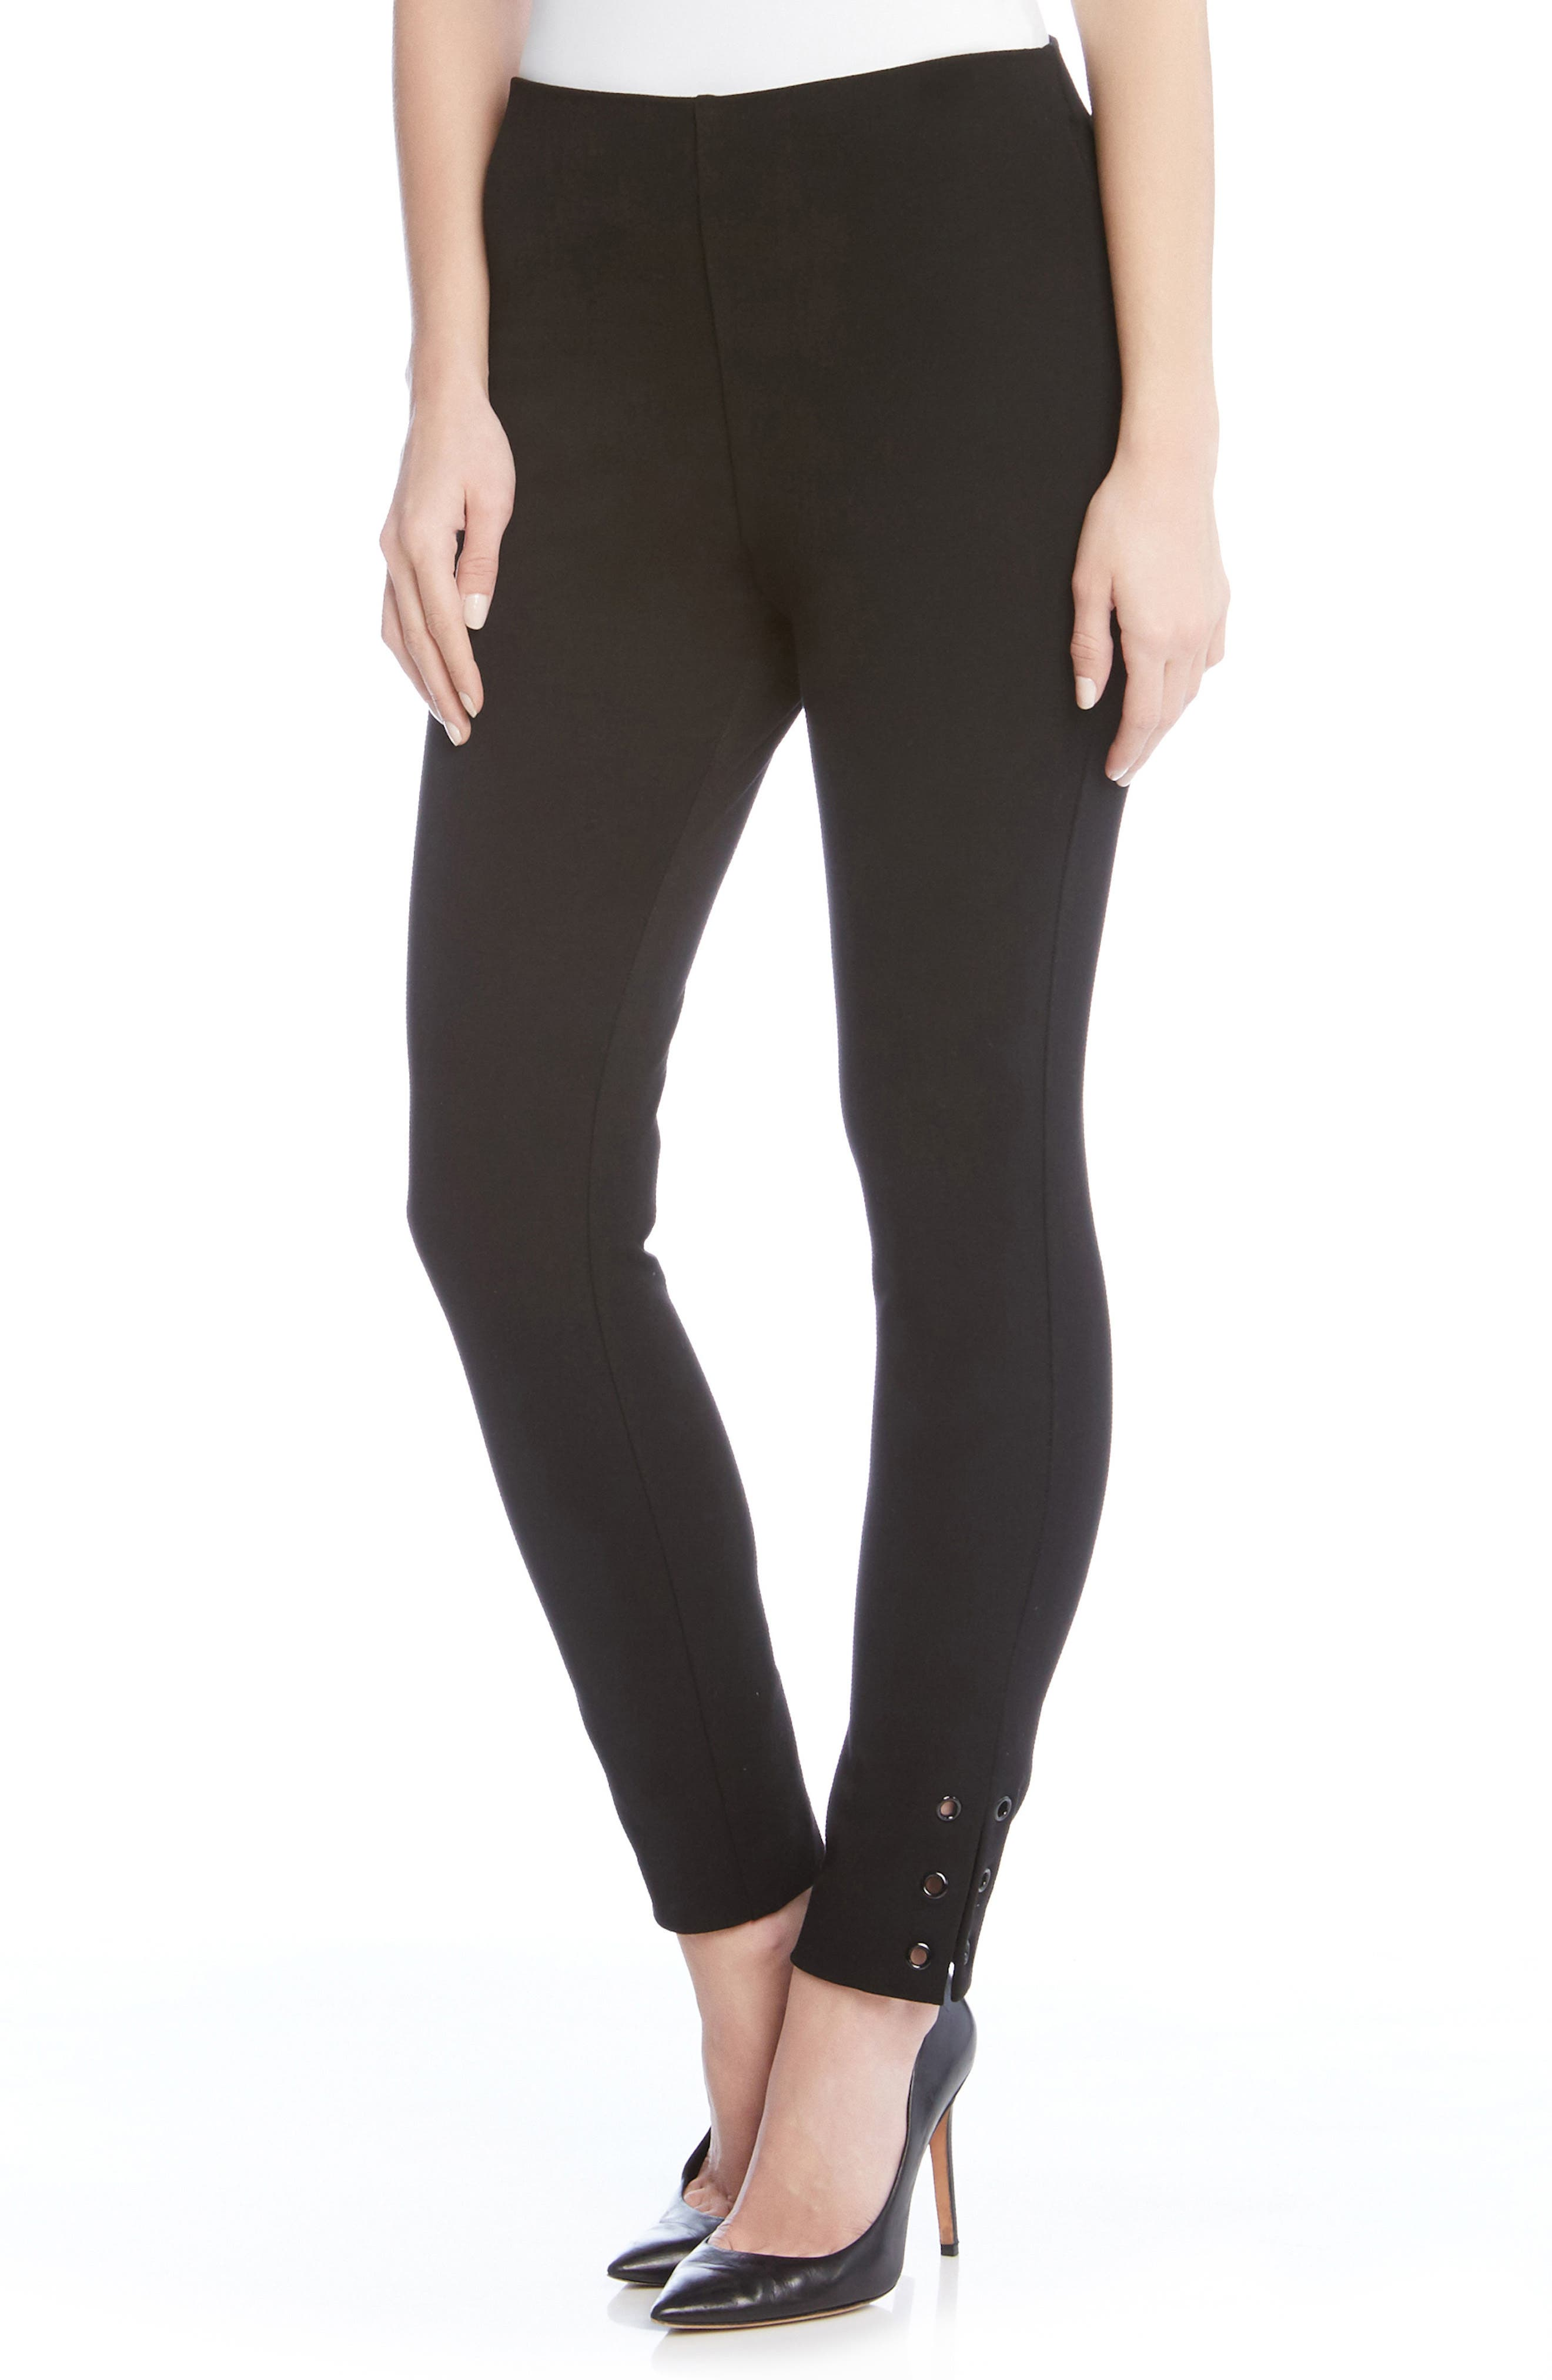 Piper Grommet Detail Skinny Pants,                             Main thumbnail 1, color,                             Black